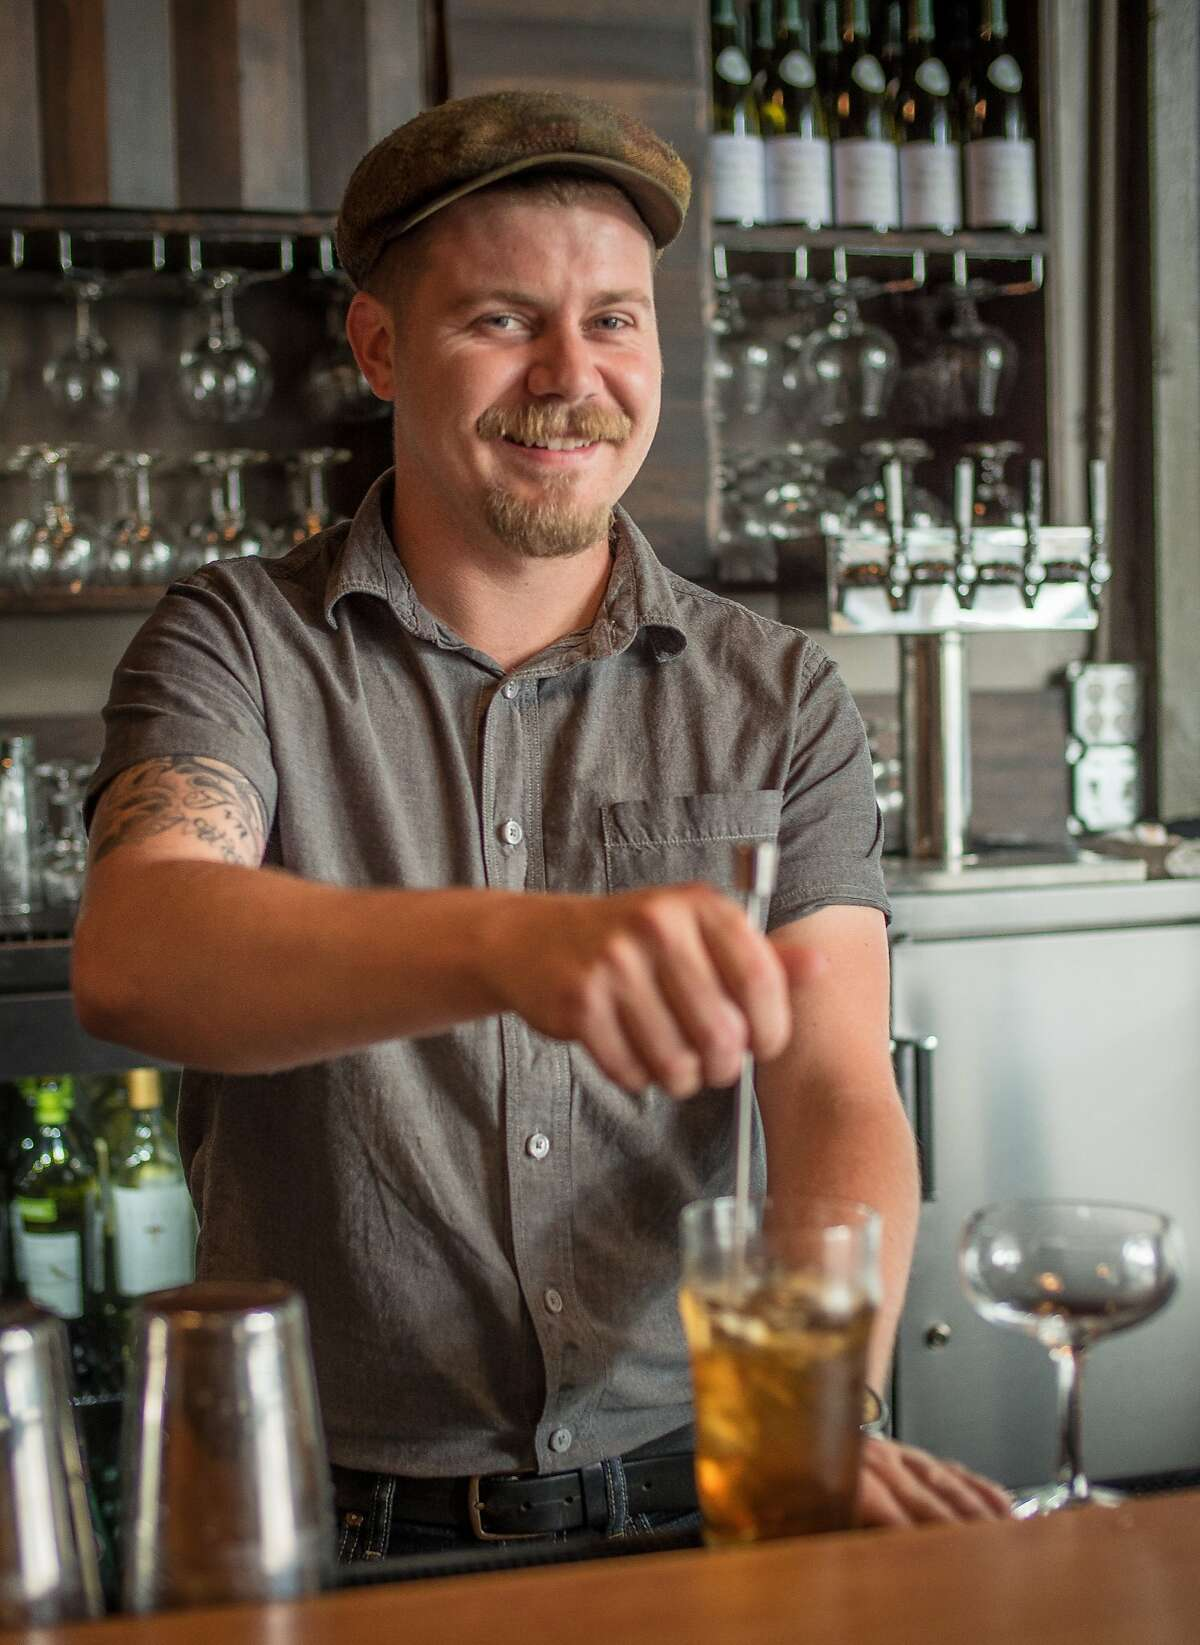 Bartnder Tyler Groom stirs a cocktail at Stones Throw in San Francisco, Calif. on August 6th, 2014.